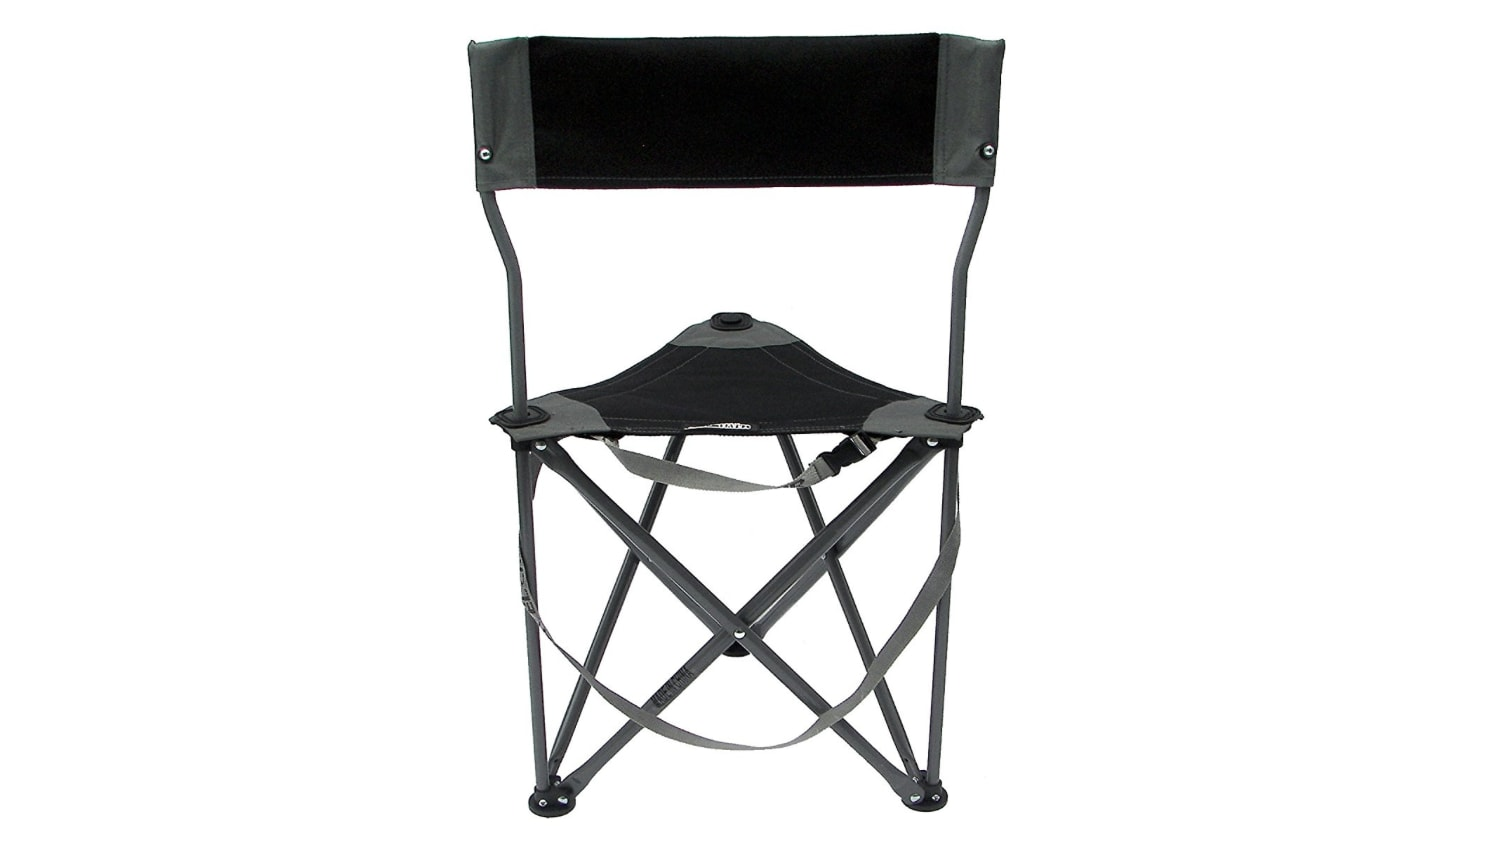 tripod stool with back rest material